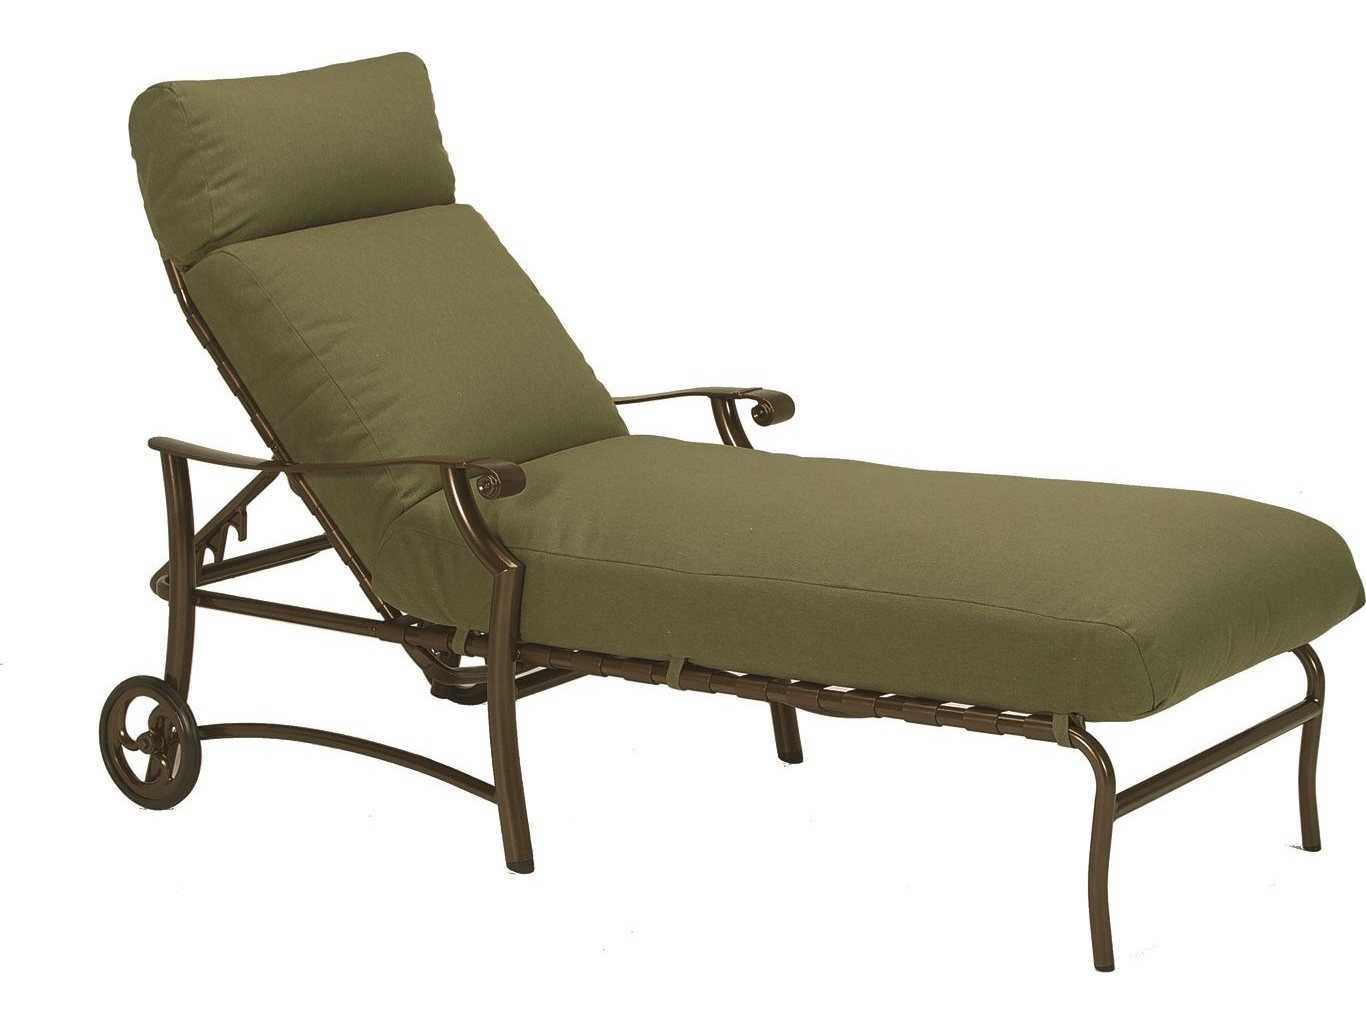 Tropitone montreaux ii relaxplus cushion aluminum chaise for Aluminum chaise lounge with wheels